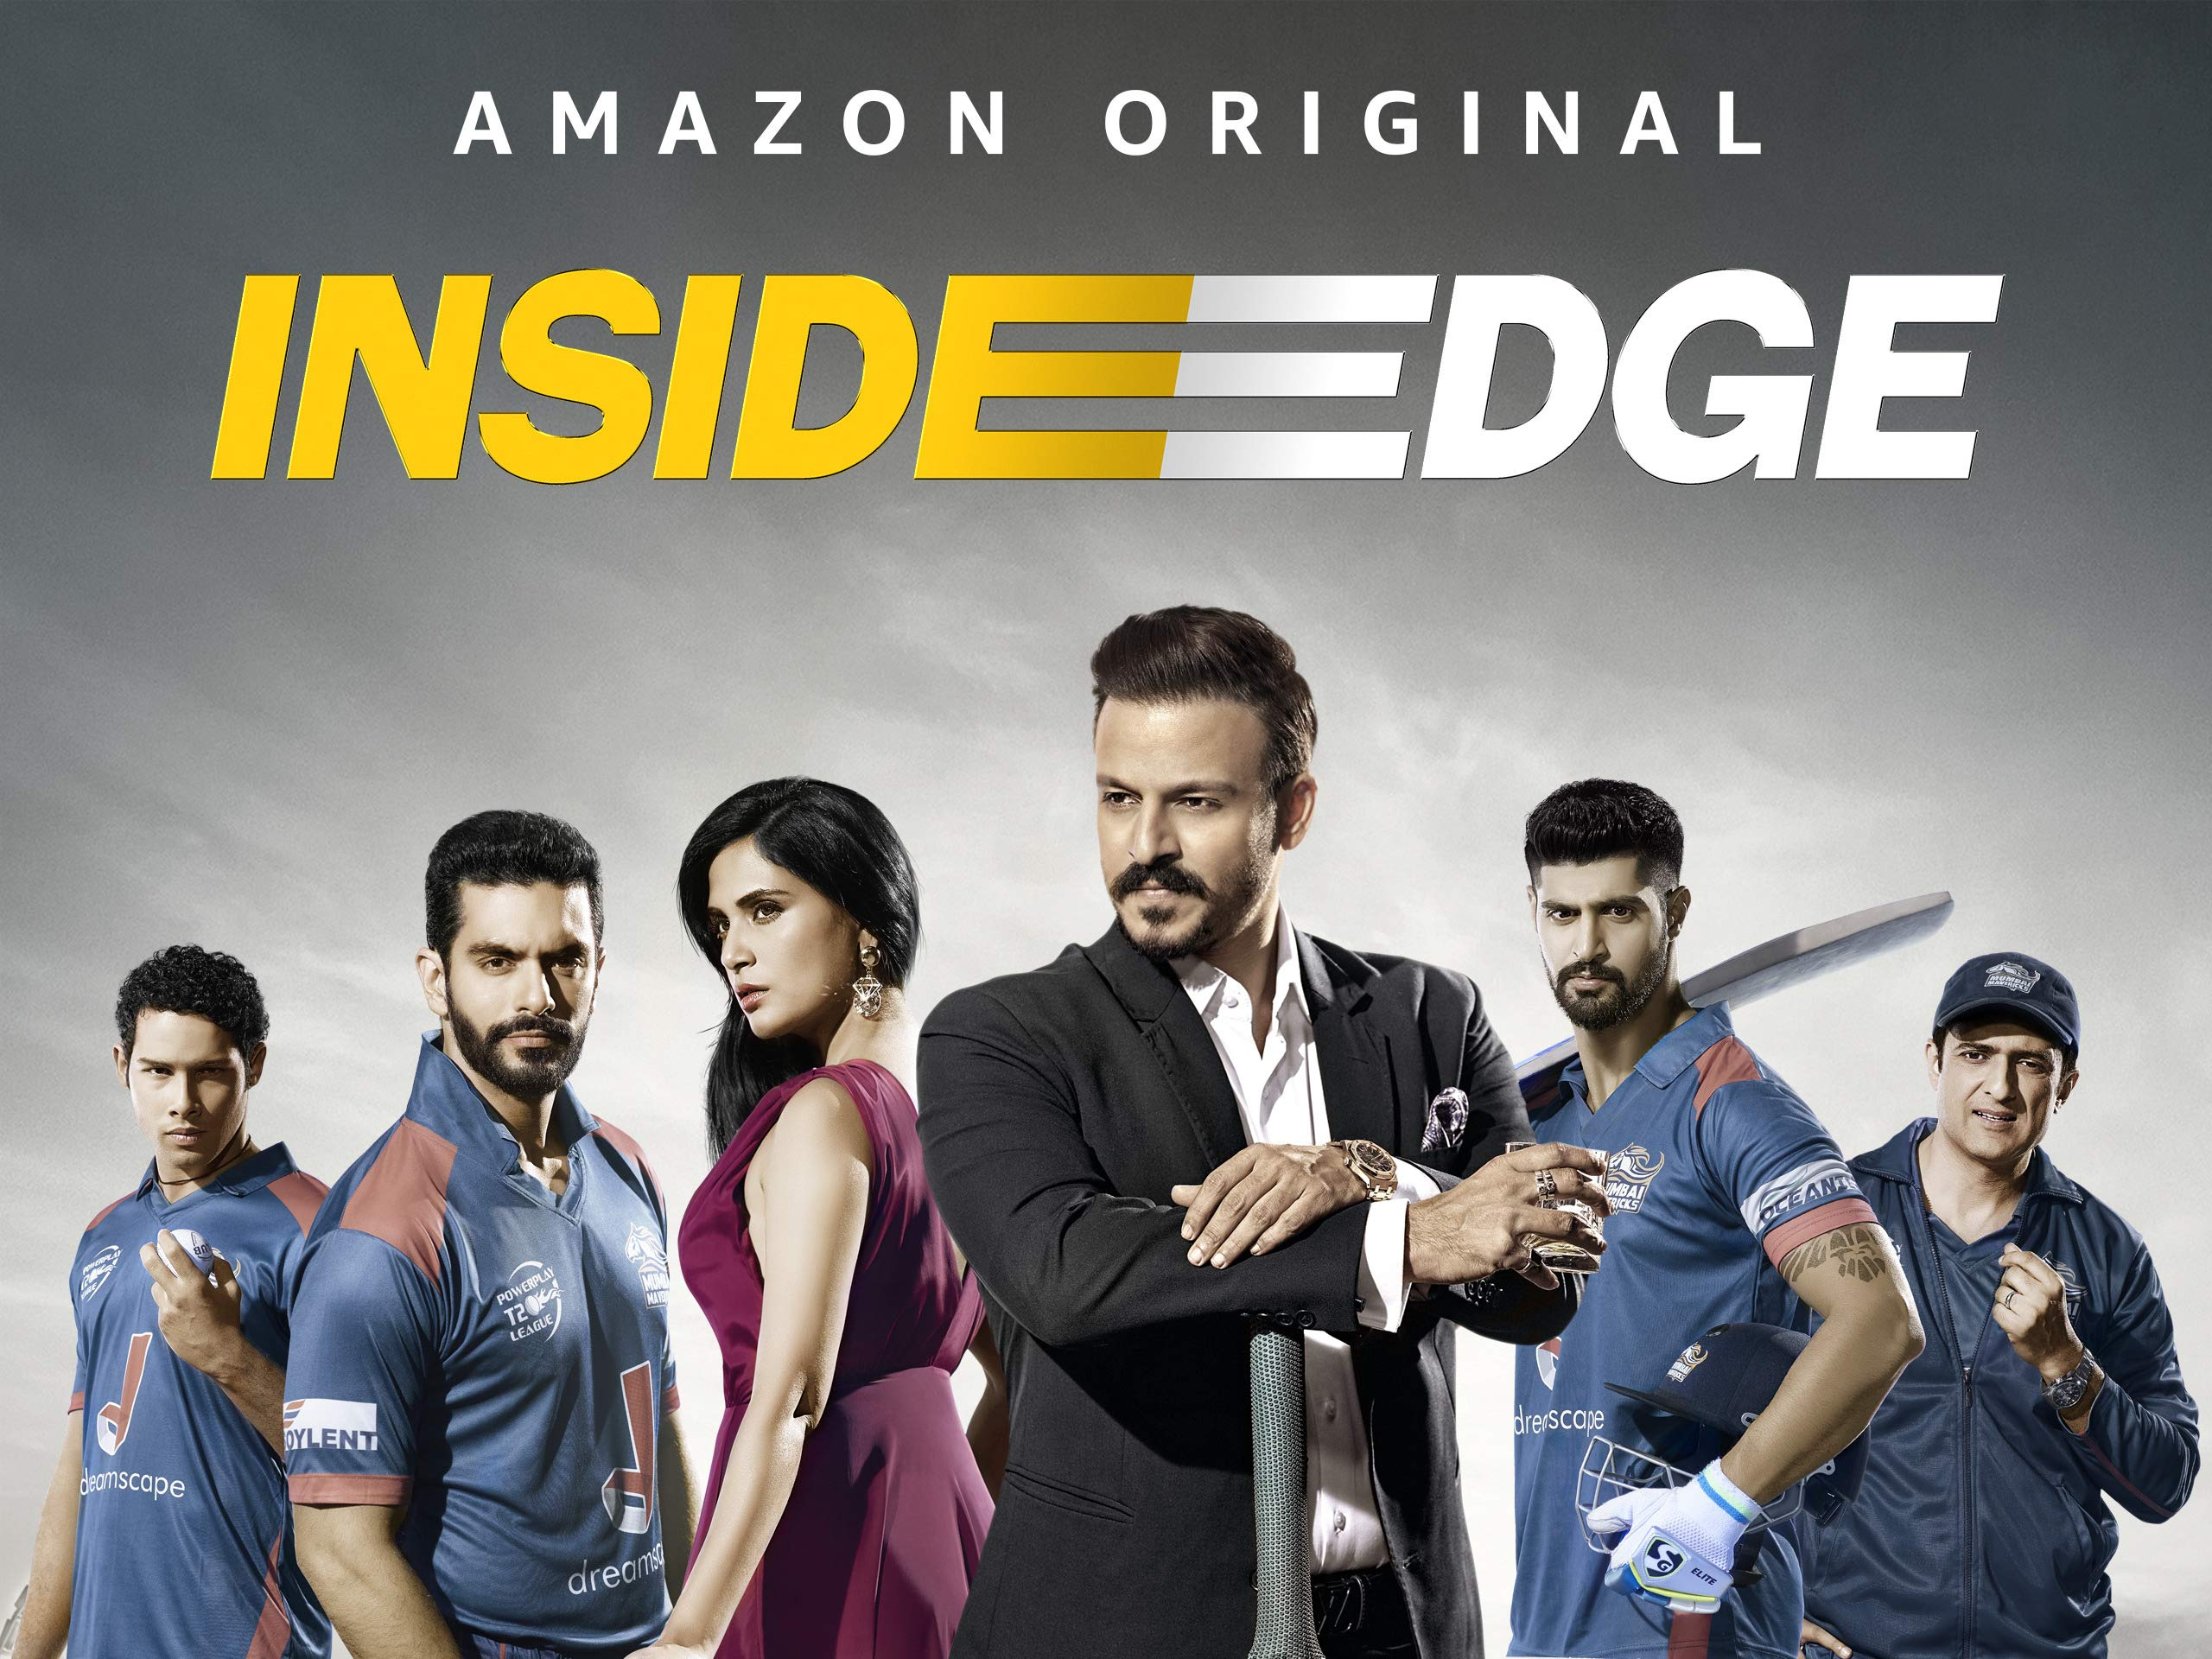 Inside Edge Season 3: update, Plot, Cast, Trailer and All You Need To Know.